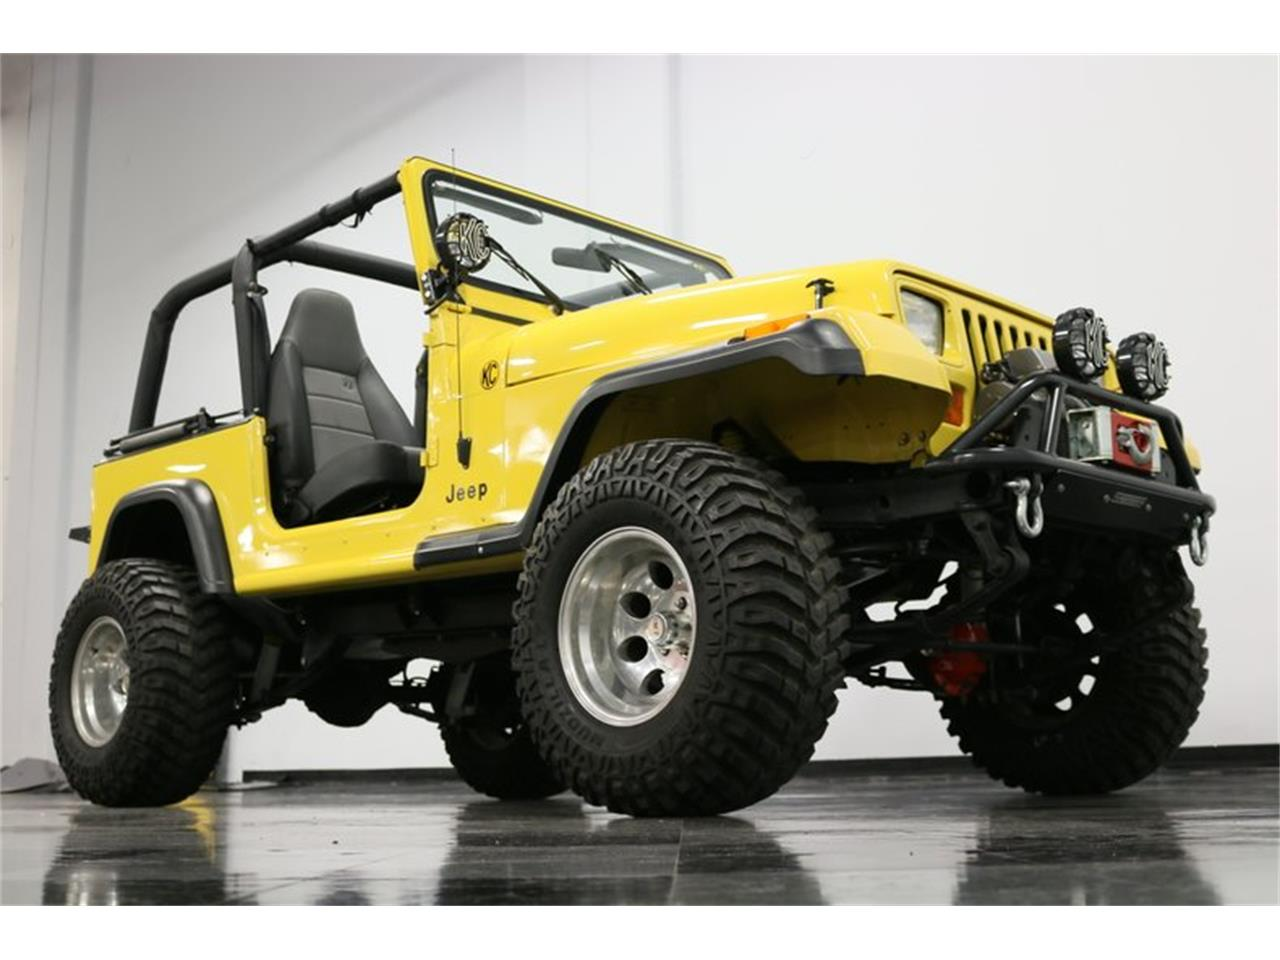 Large Picture of 1993 Wrangler located in Ft Worth Texas - $21,995.00 Offered by Streetside Classics - Dallas / Fort Worth - P701